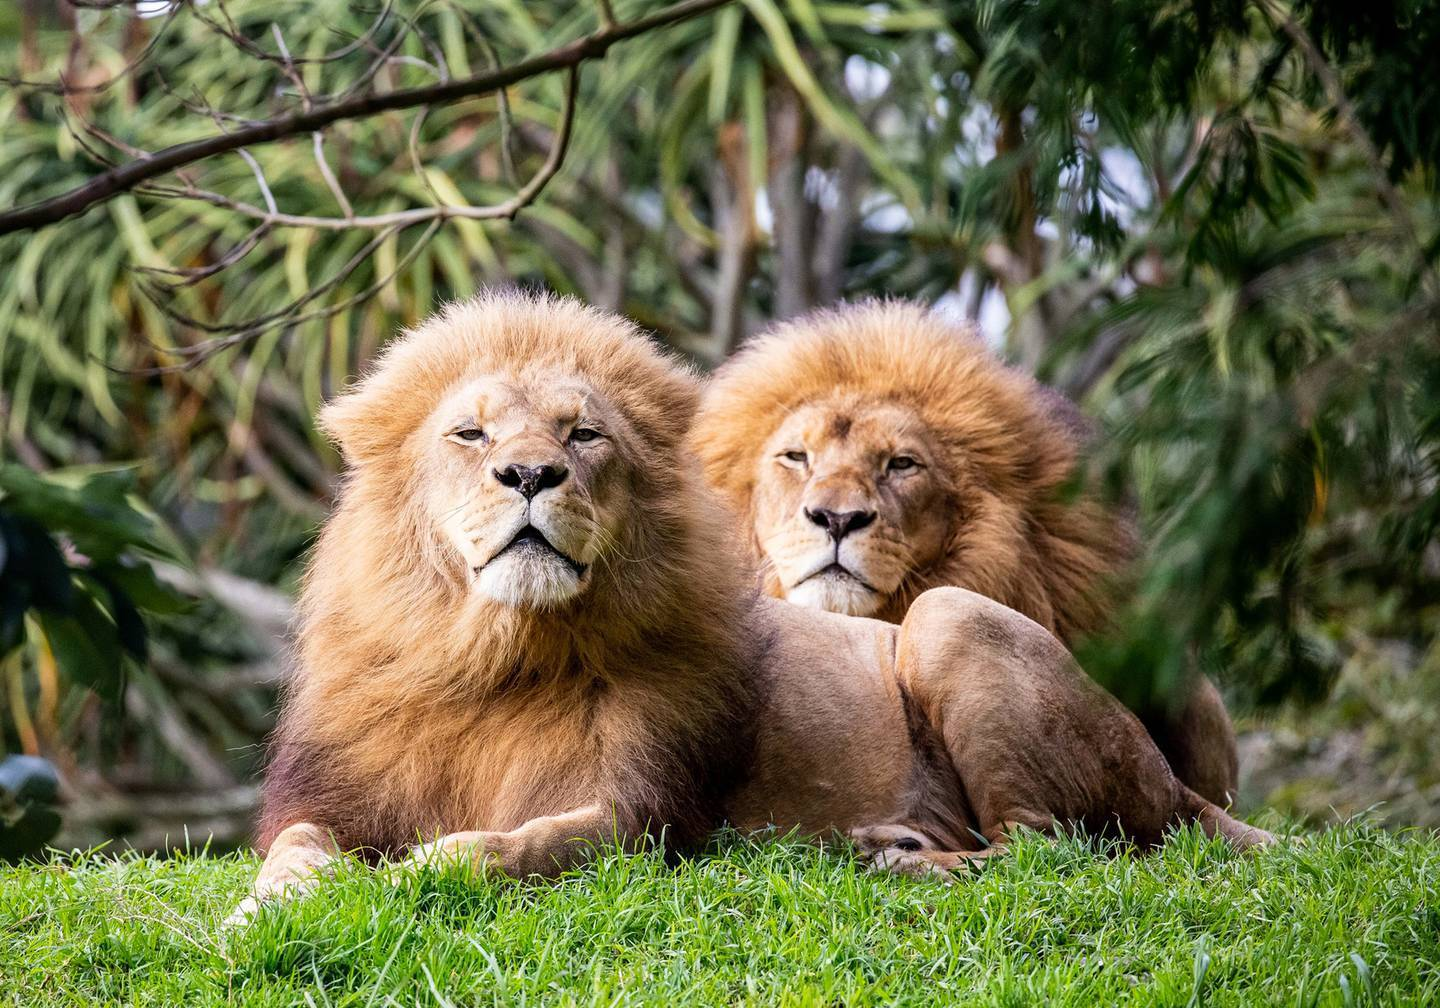 Visitors to Auckland Zoo may need to be fully vaccinated to see the lions and other animals. Photo / Auckland Zoo